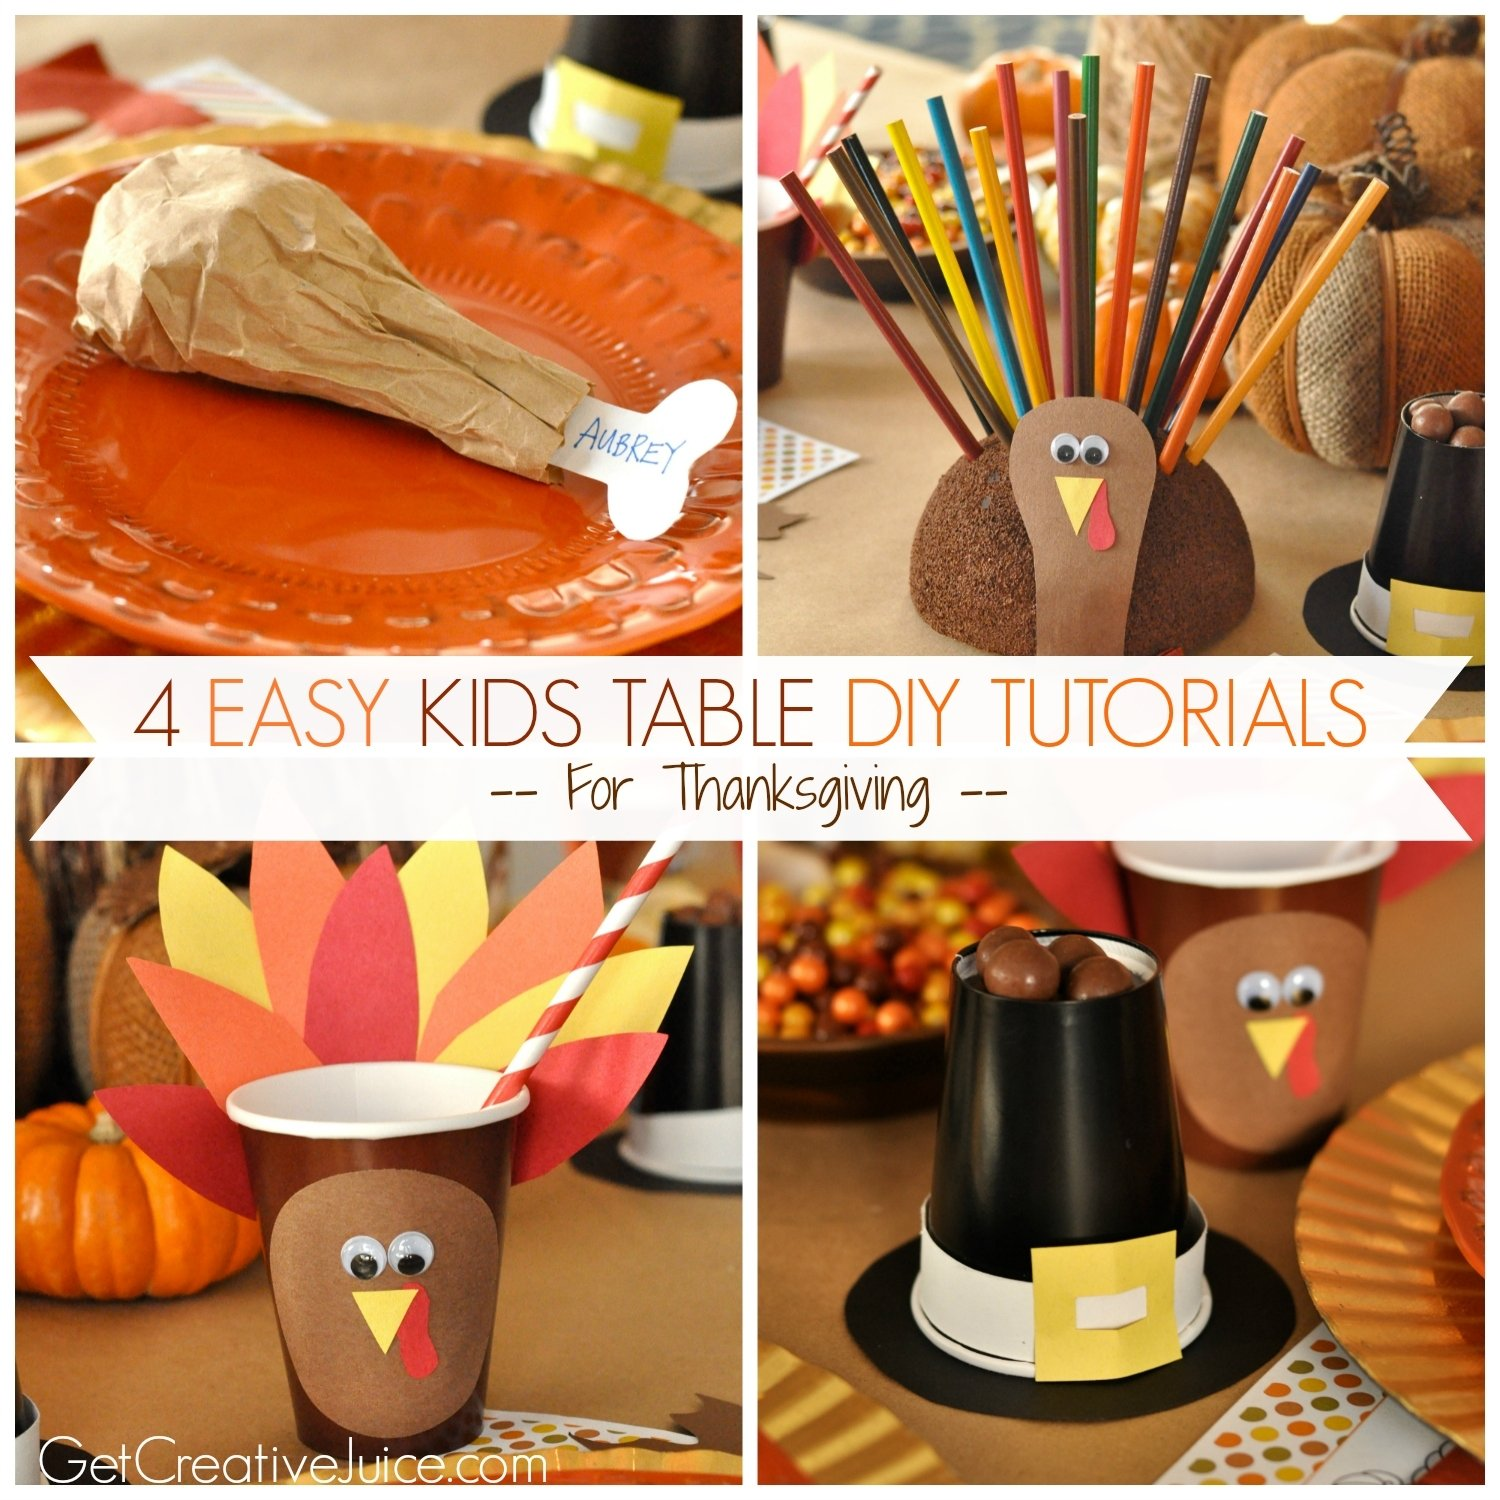 10 Unique Thanksgiving Craft Ideas For Adults 4 easy kids thanksgiving table craft tutorials creative juice 1 2021